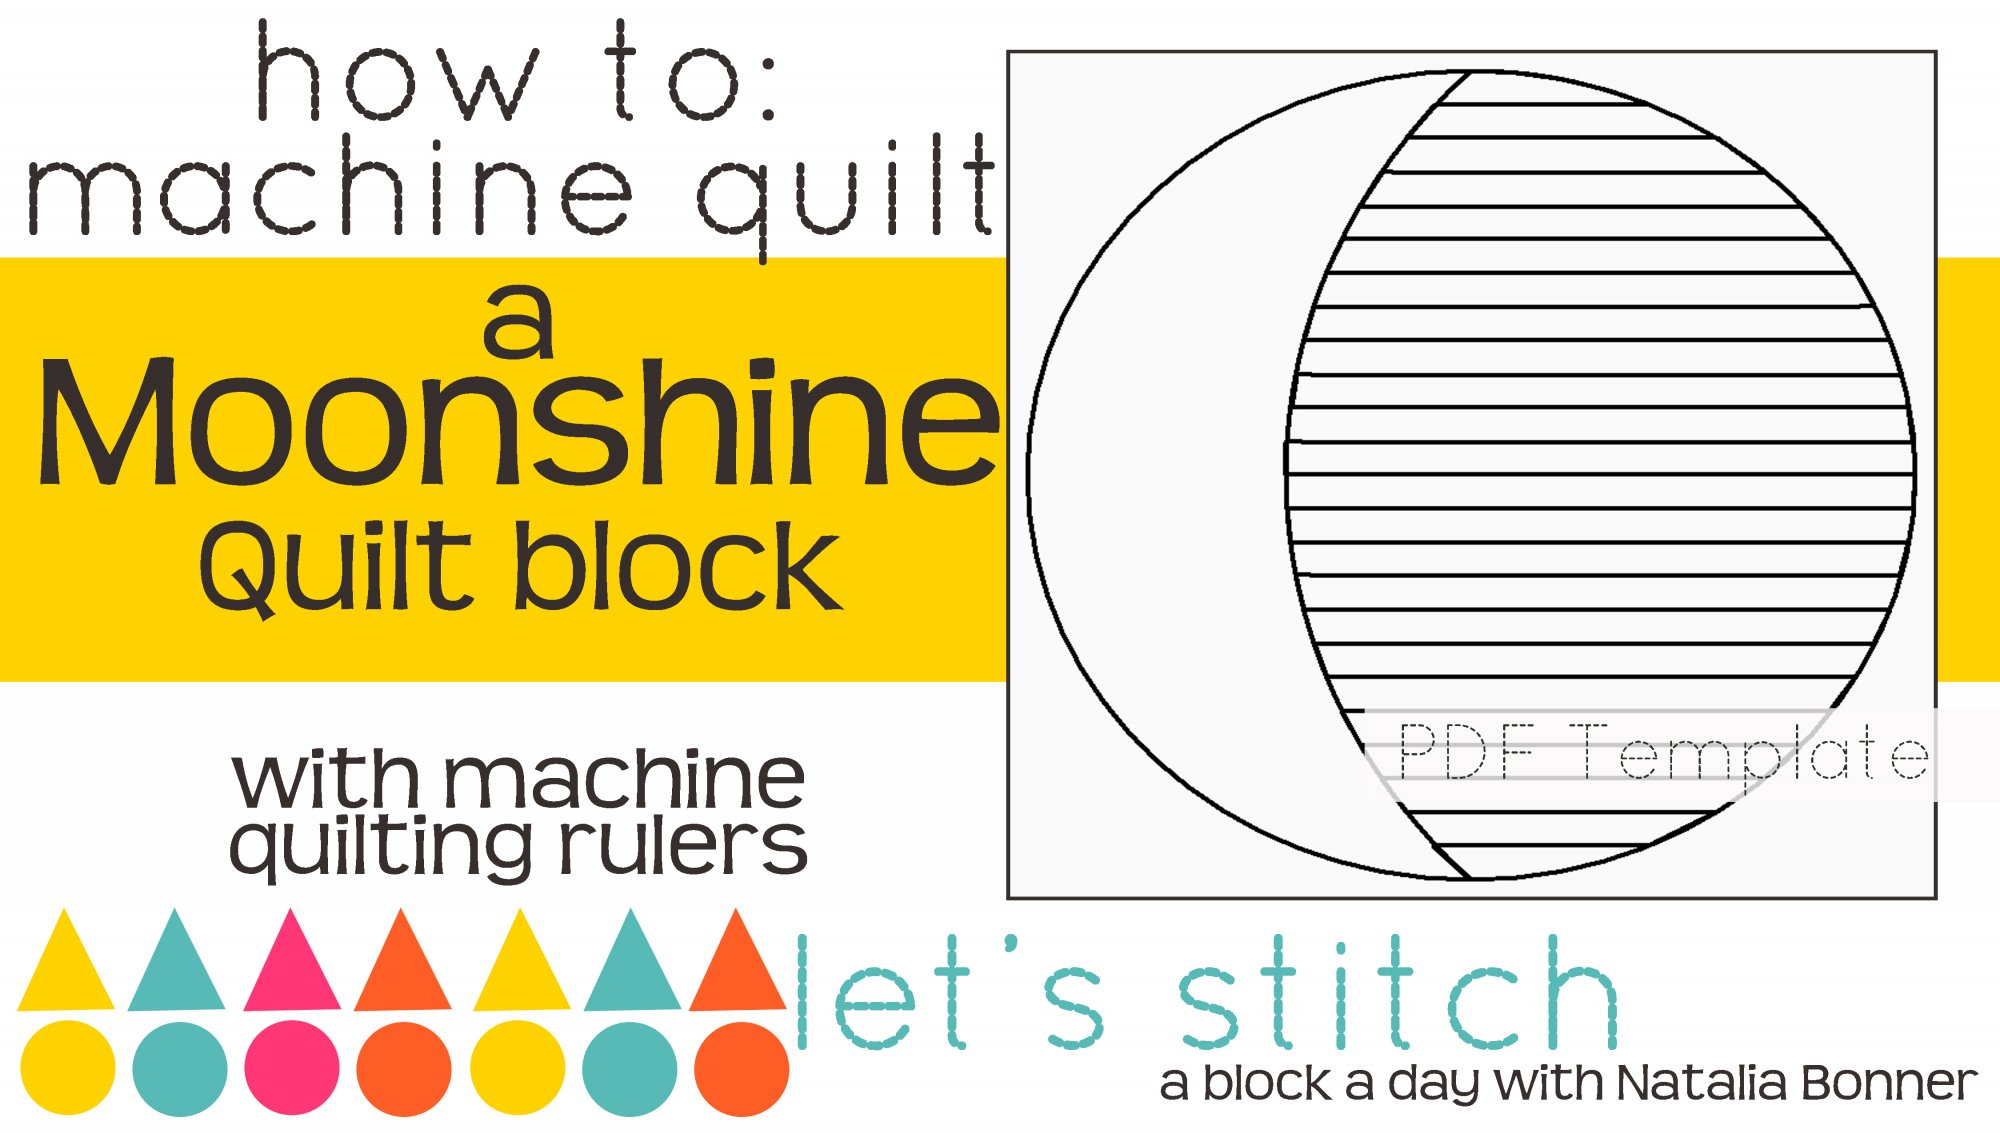 Let's Stitch - A Block a Day With Natalia Bonner - PDF - Moonshine